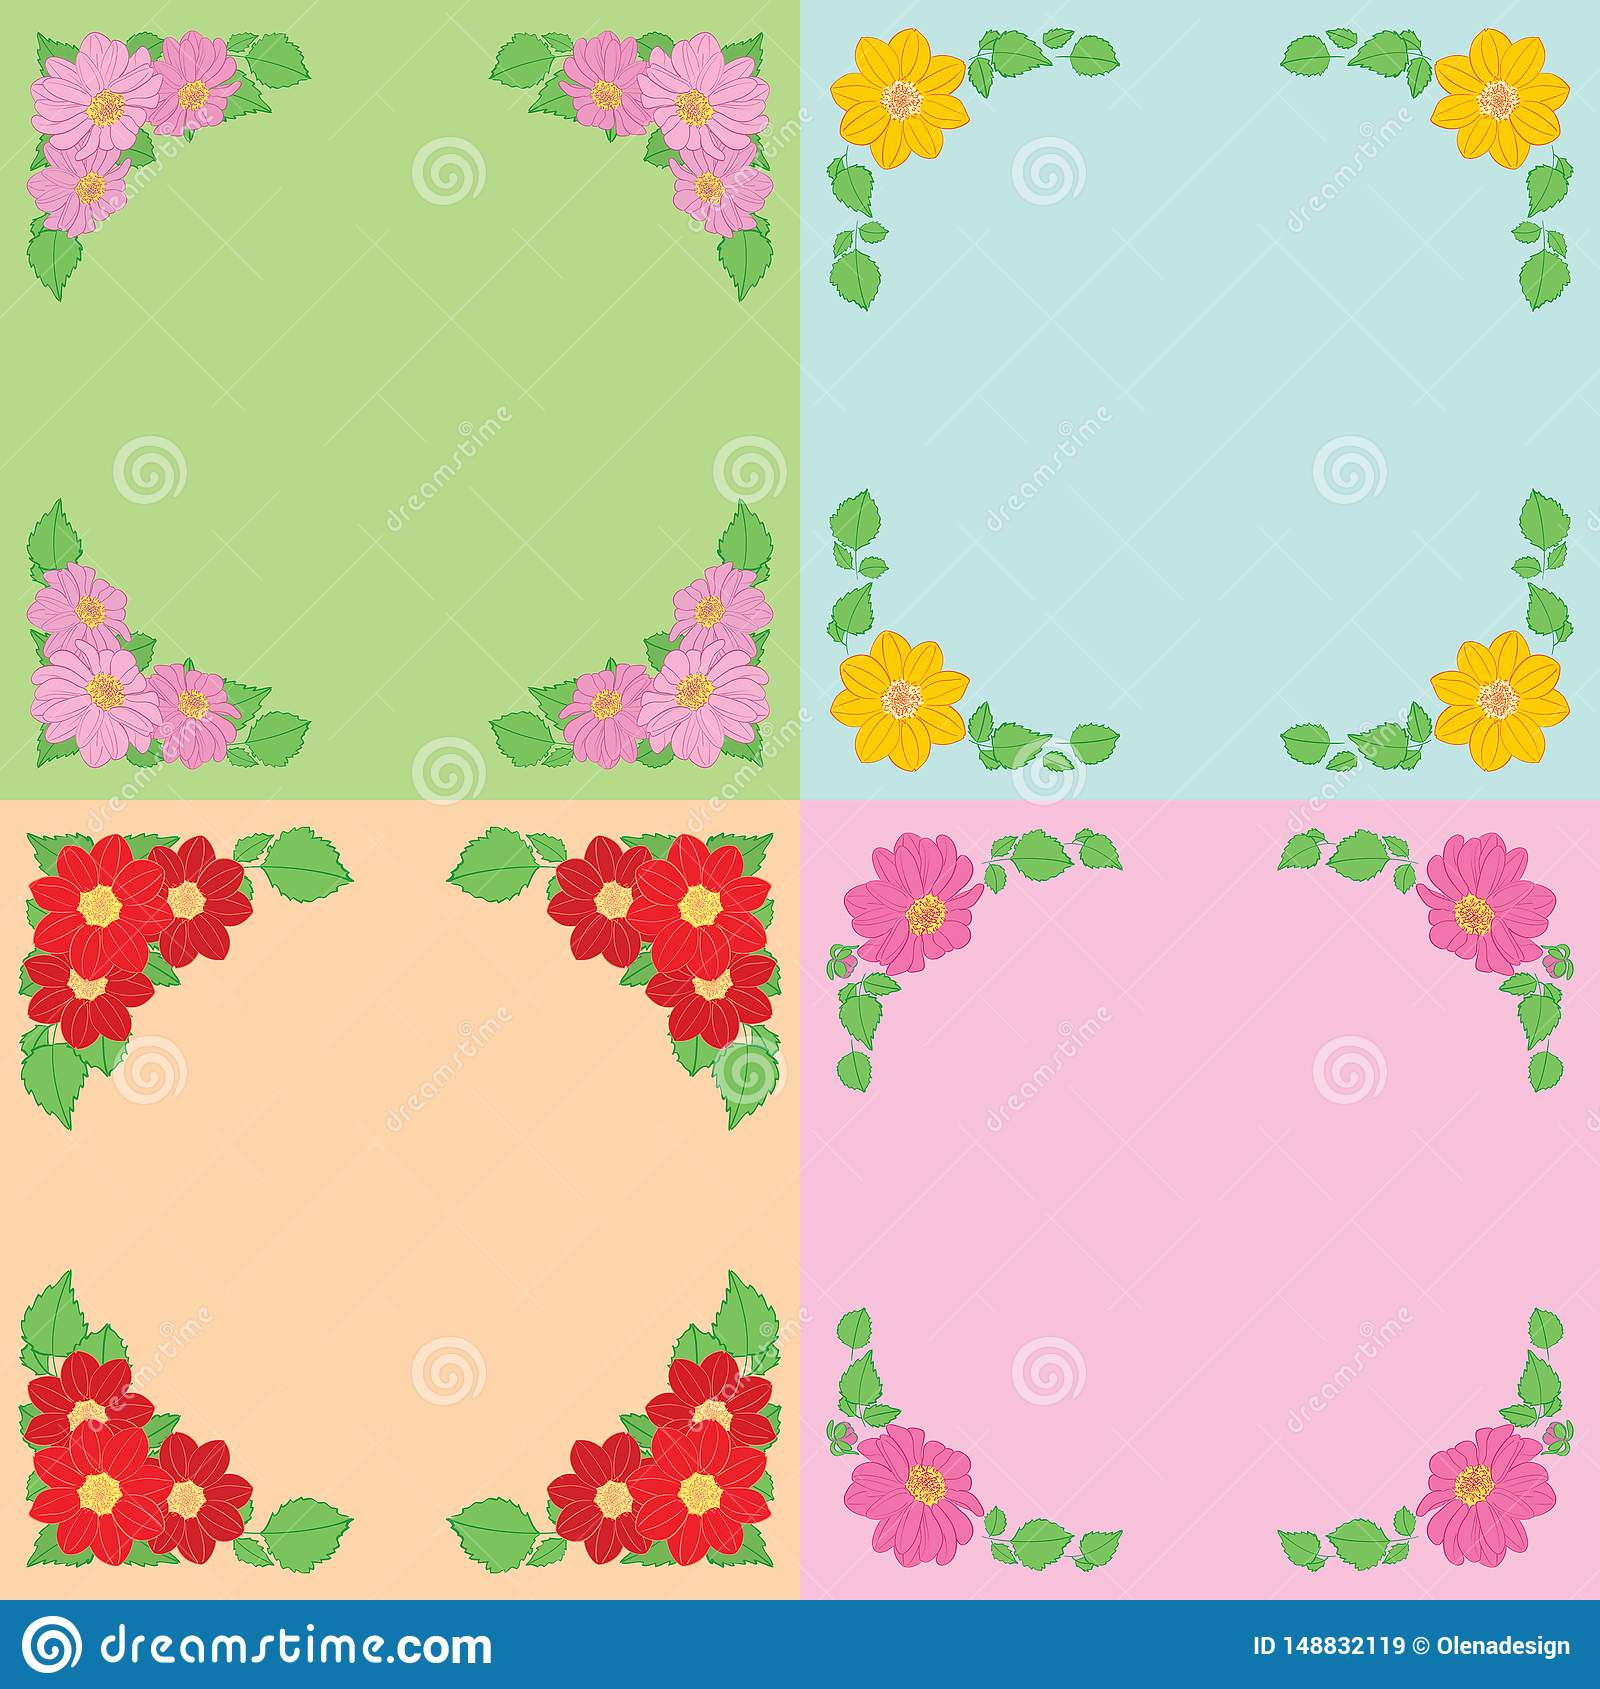 Dahlias flowers with green leaves as frames on color backgrounds - vector set